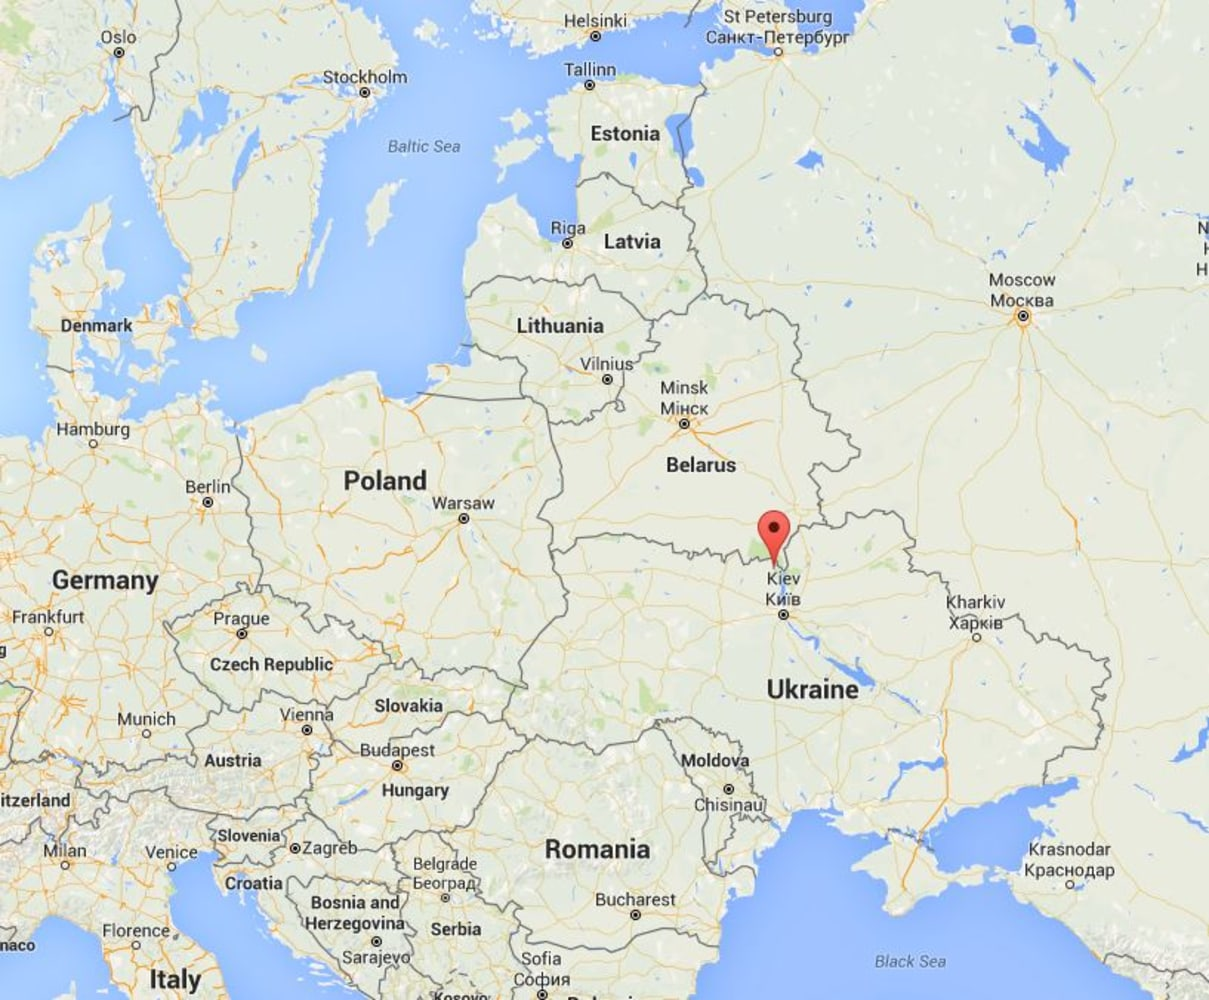 Chernobyl Map Images - Reverse Search